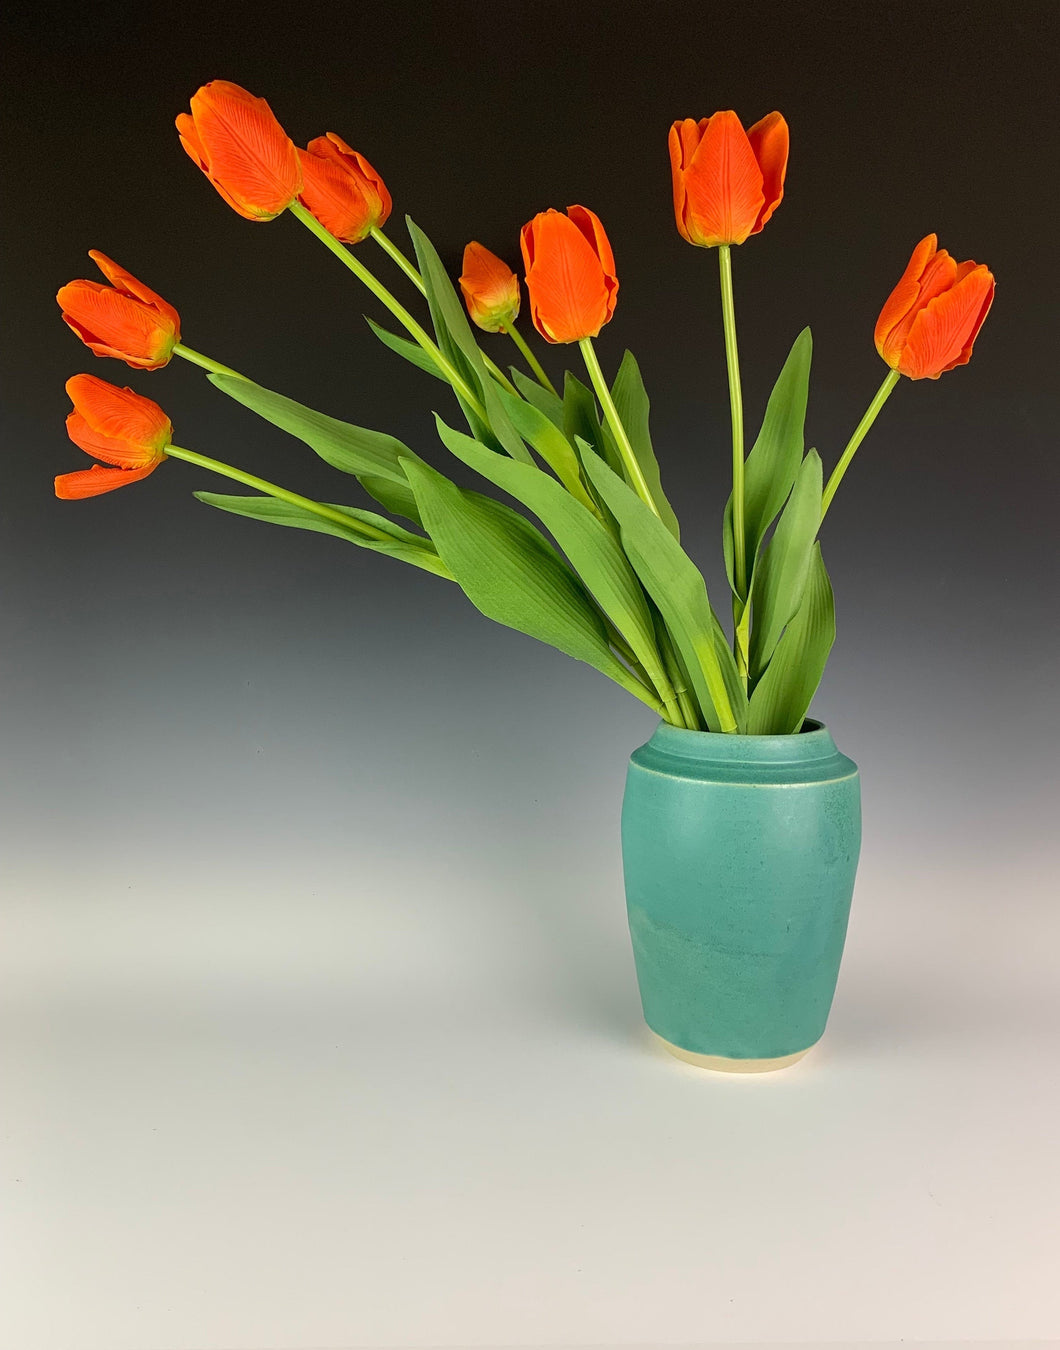 turquoise green vase displayed with tulips